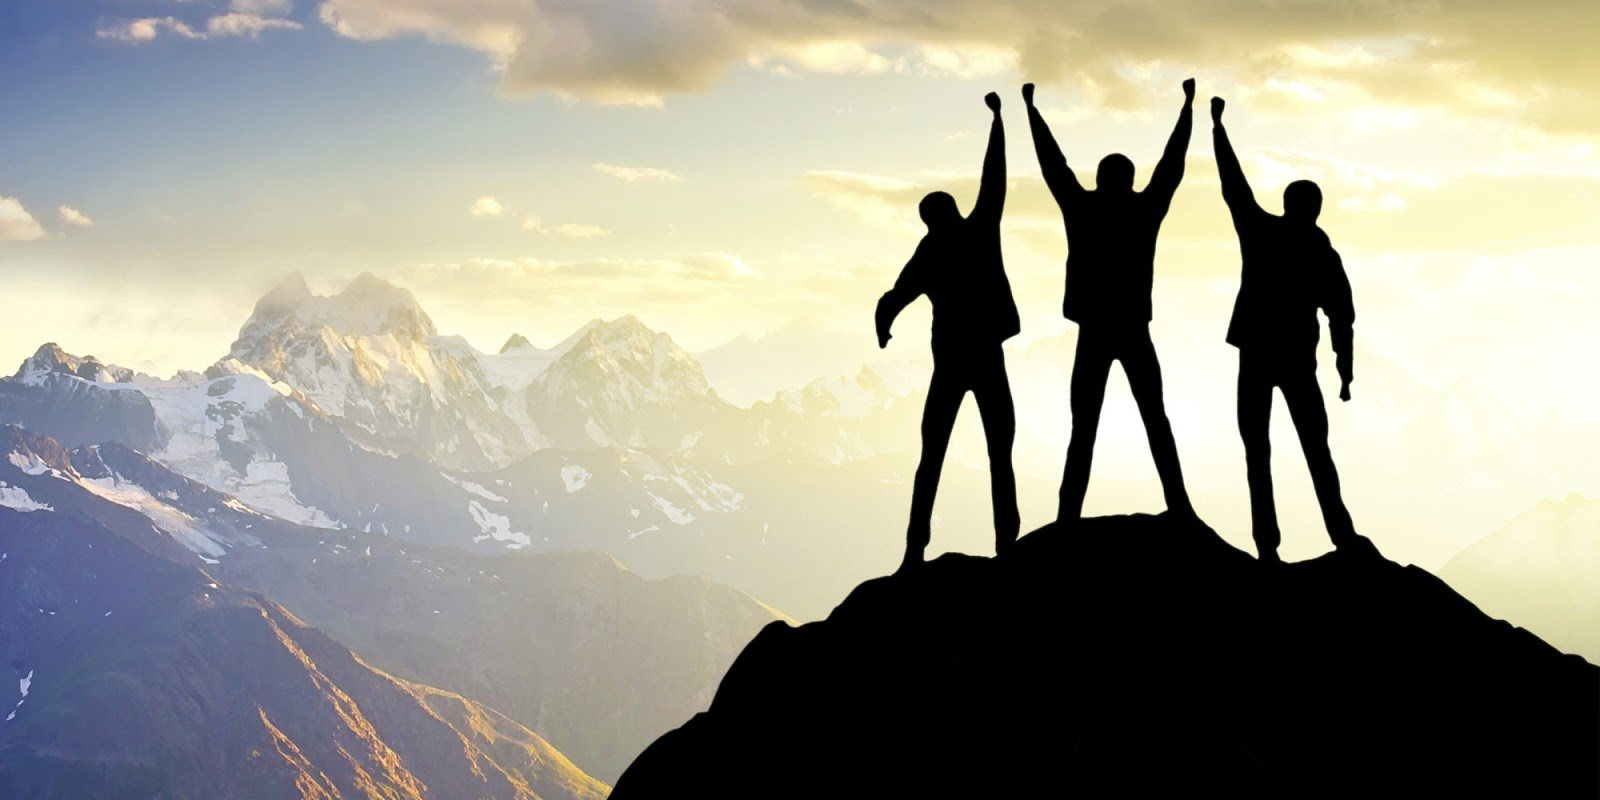 10 things to give up to achieve success wealth my there is no way your past failures are going to determine your tomorrow in fact what you do today is what will determine your achievements in the future